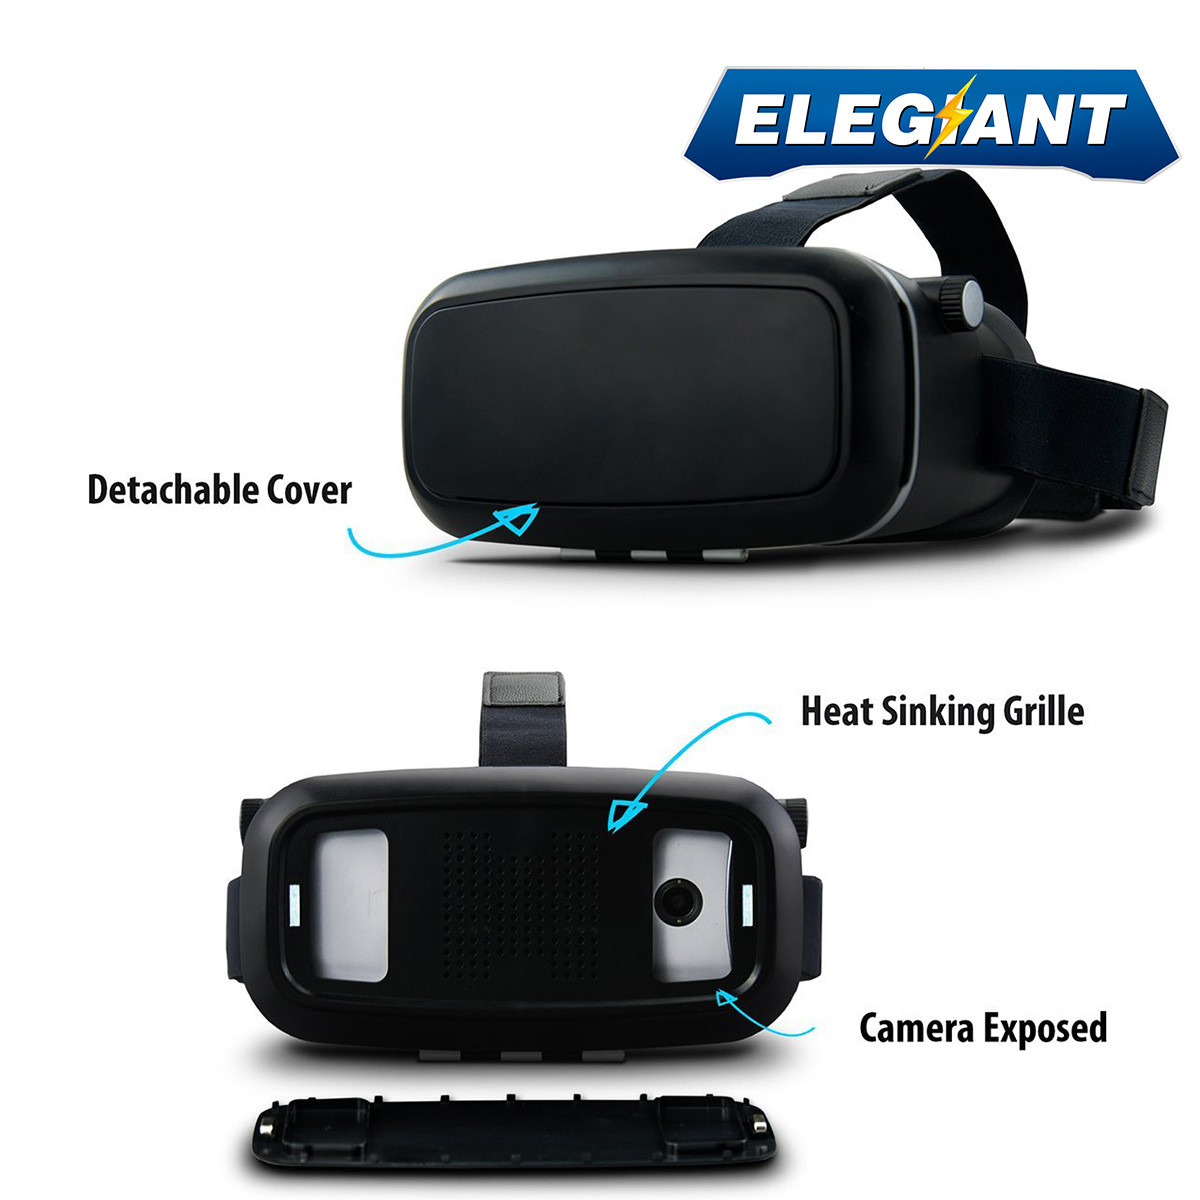 ELEGIANT Virtual Reality 360 HD Viewing Immersive 3D font b VR b font Glasses Google Cardboard